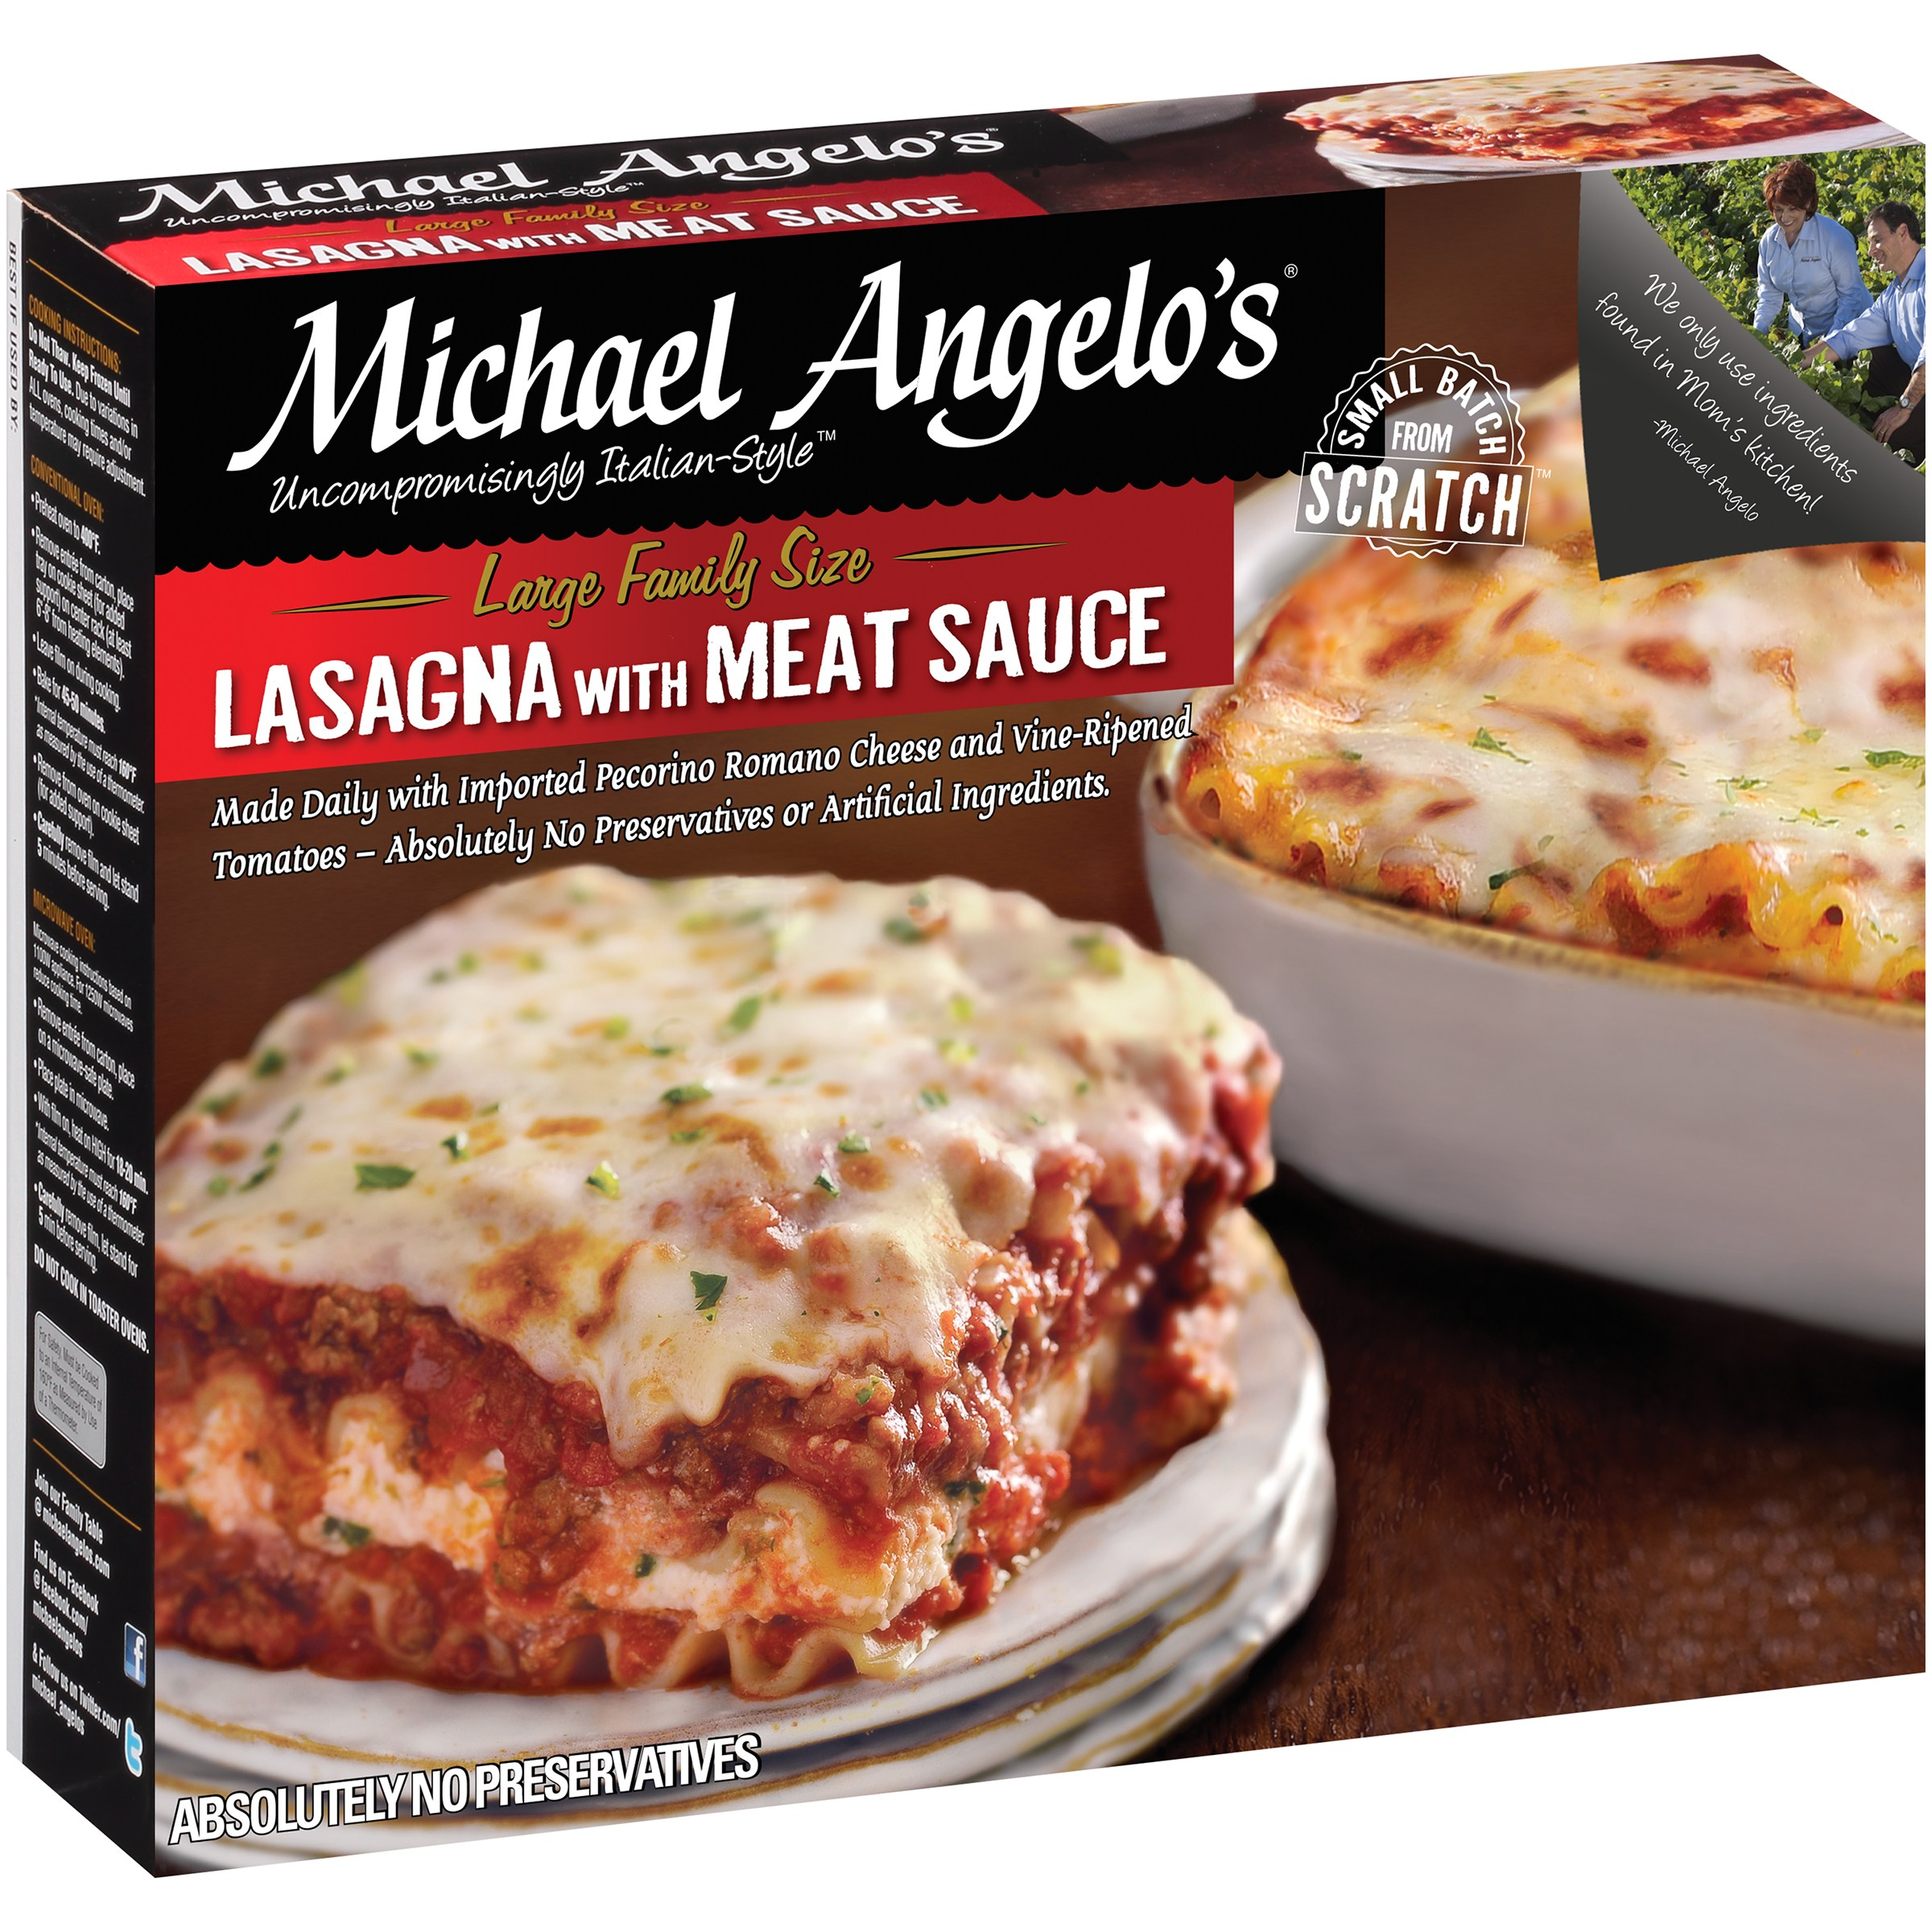 Michael Angelo's Lasagna with Meat Sauce 46 oz. Box by Michael Angelo's Gourmet Foods, Inc.